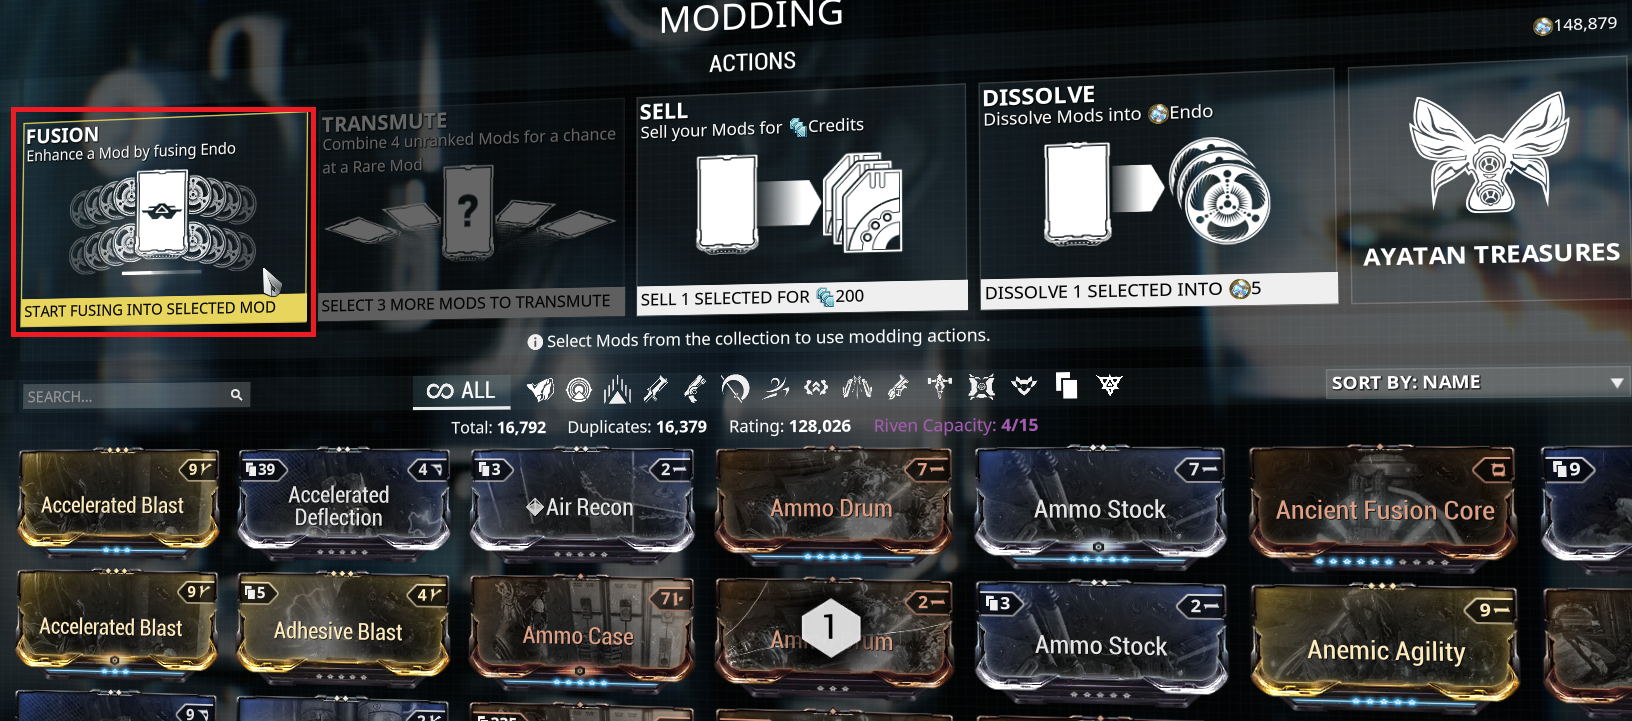 fusion in mod segment in landing craft